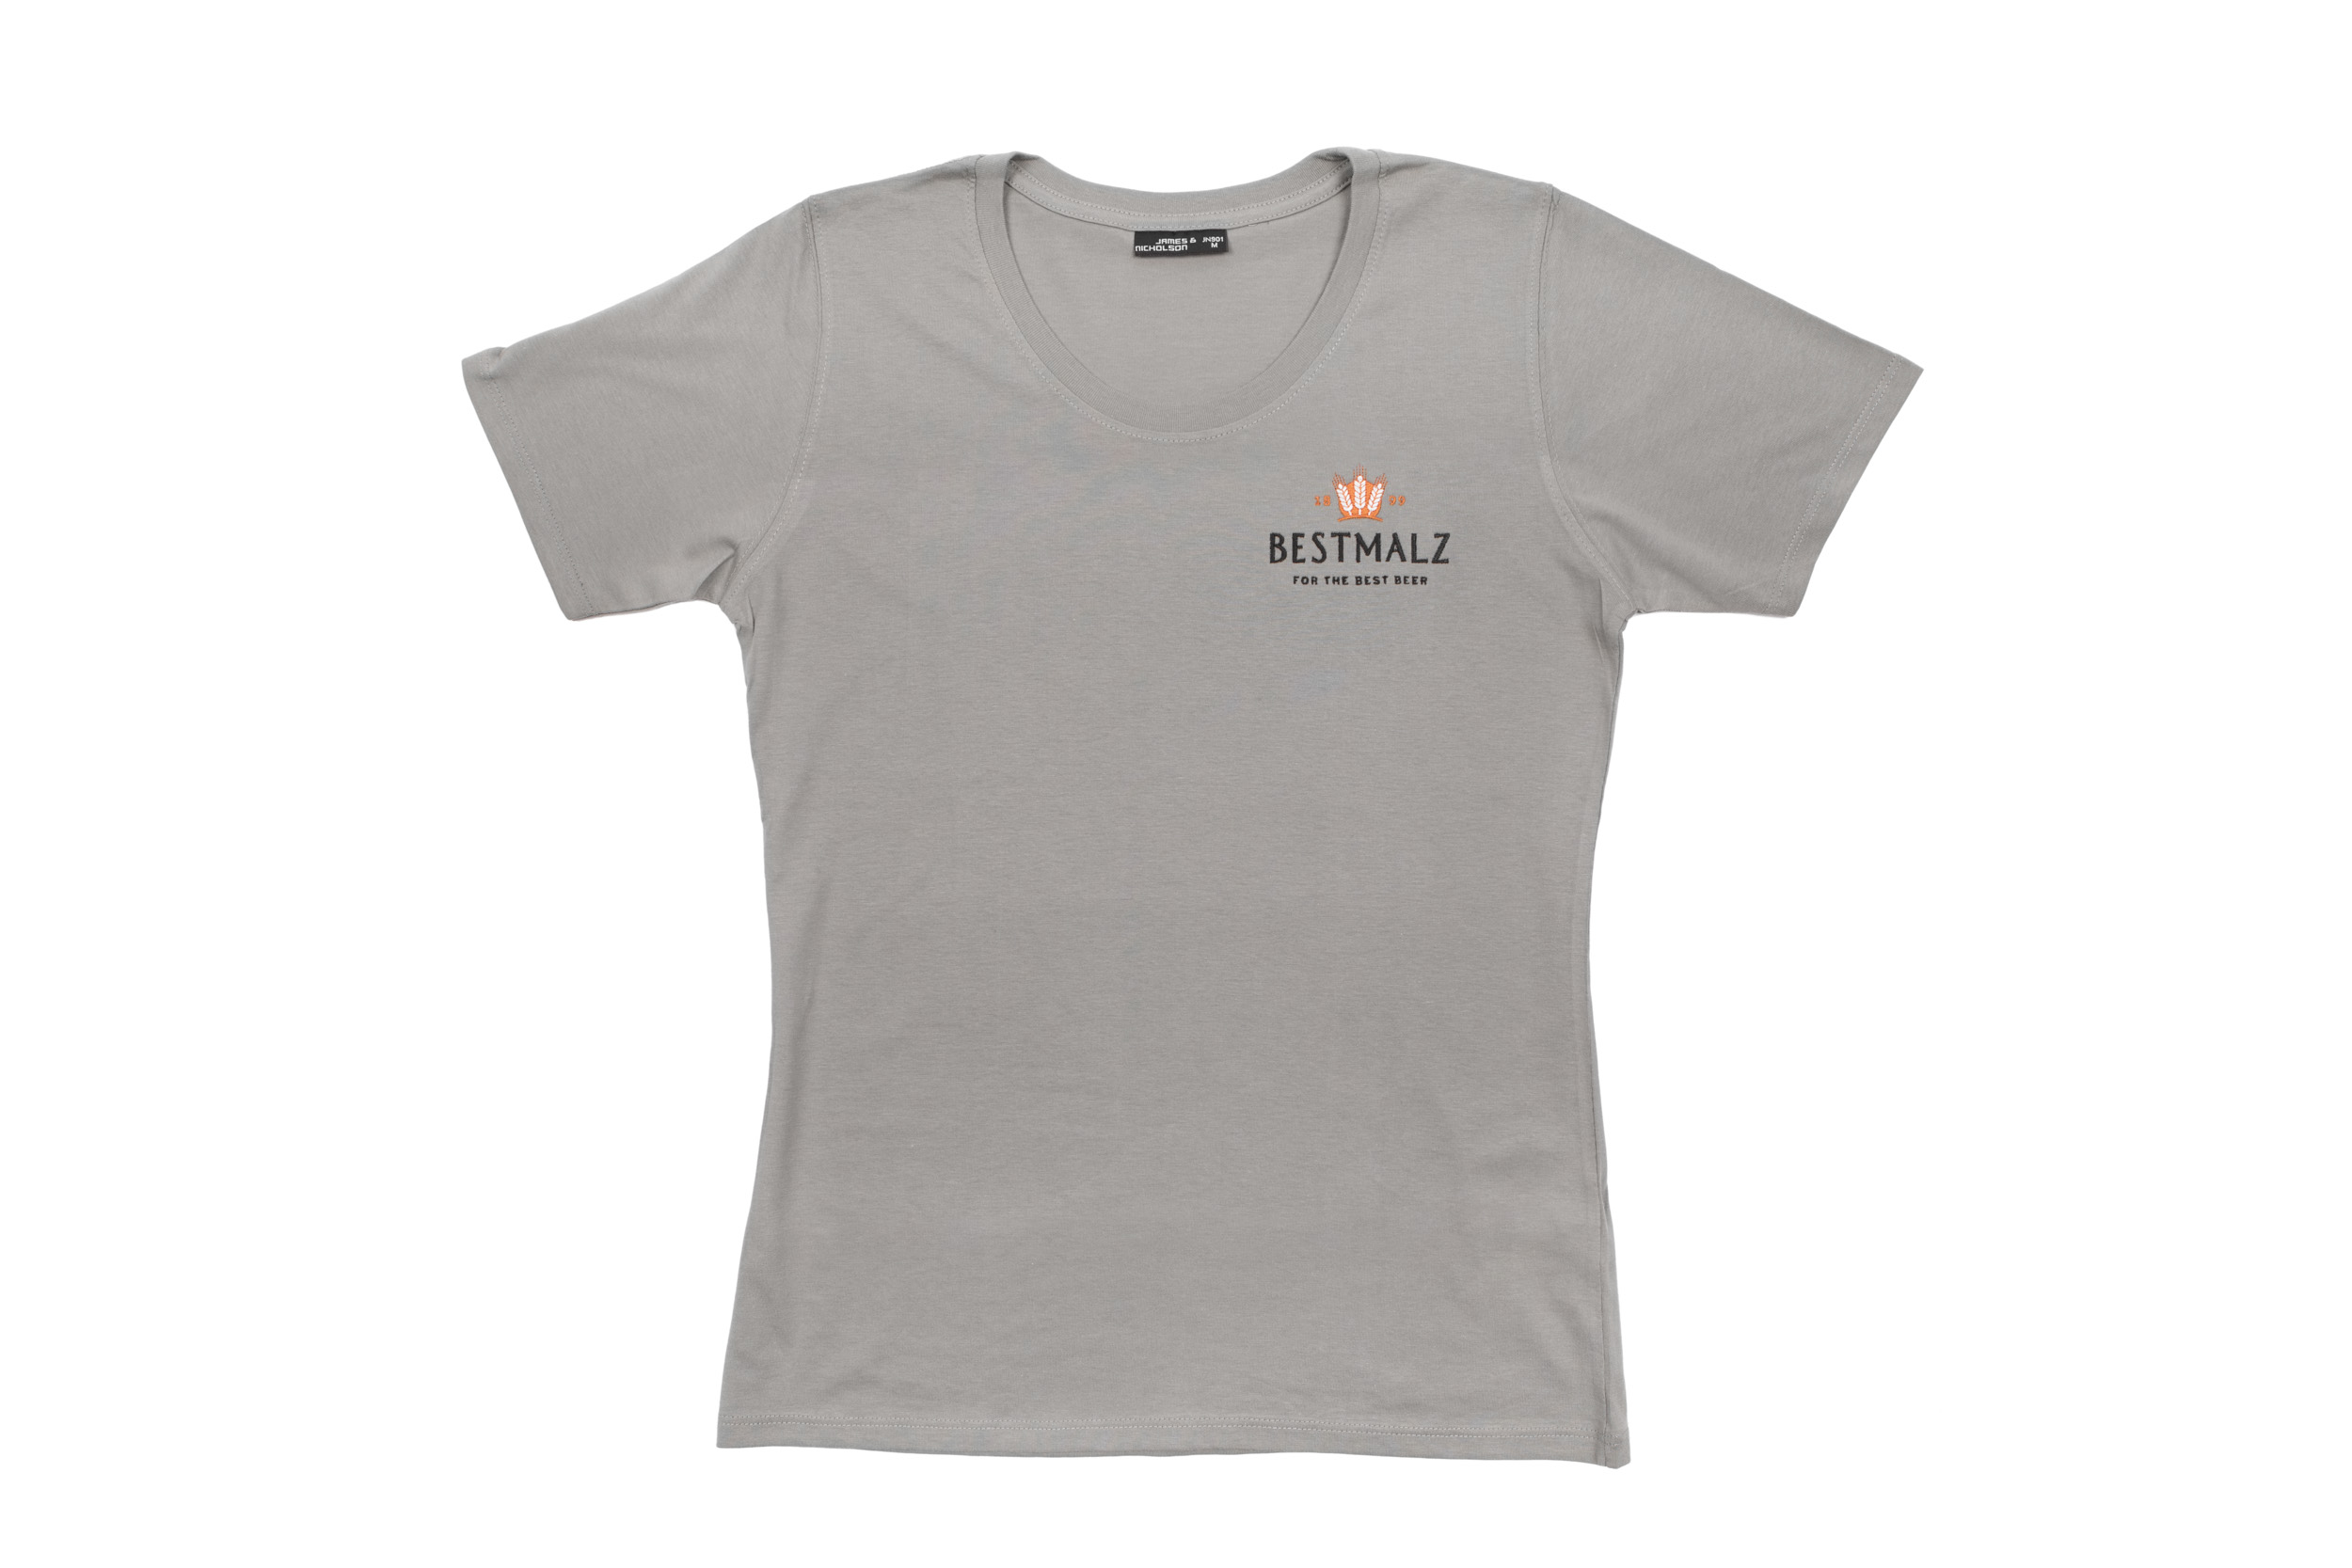 malt it up basic t shirt grey women bestmalz braumalz. Black Bedroom Furniture Sets. Home Design Ideas